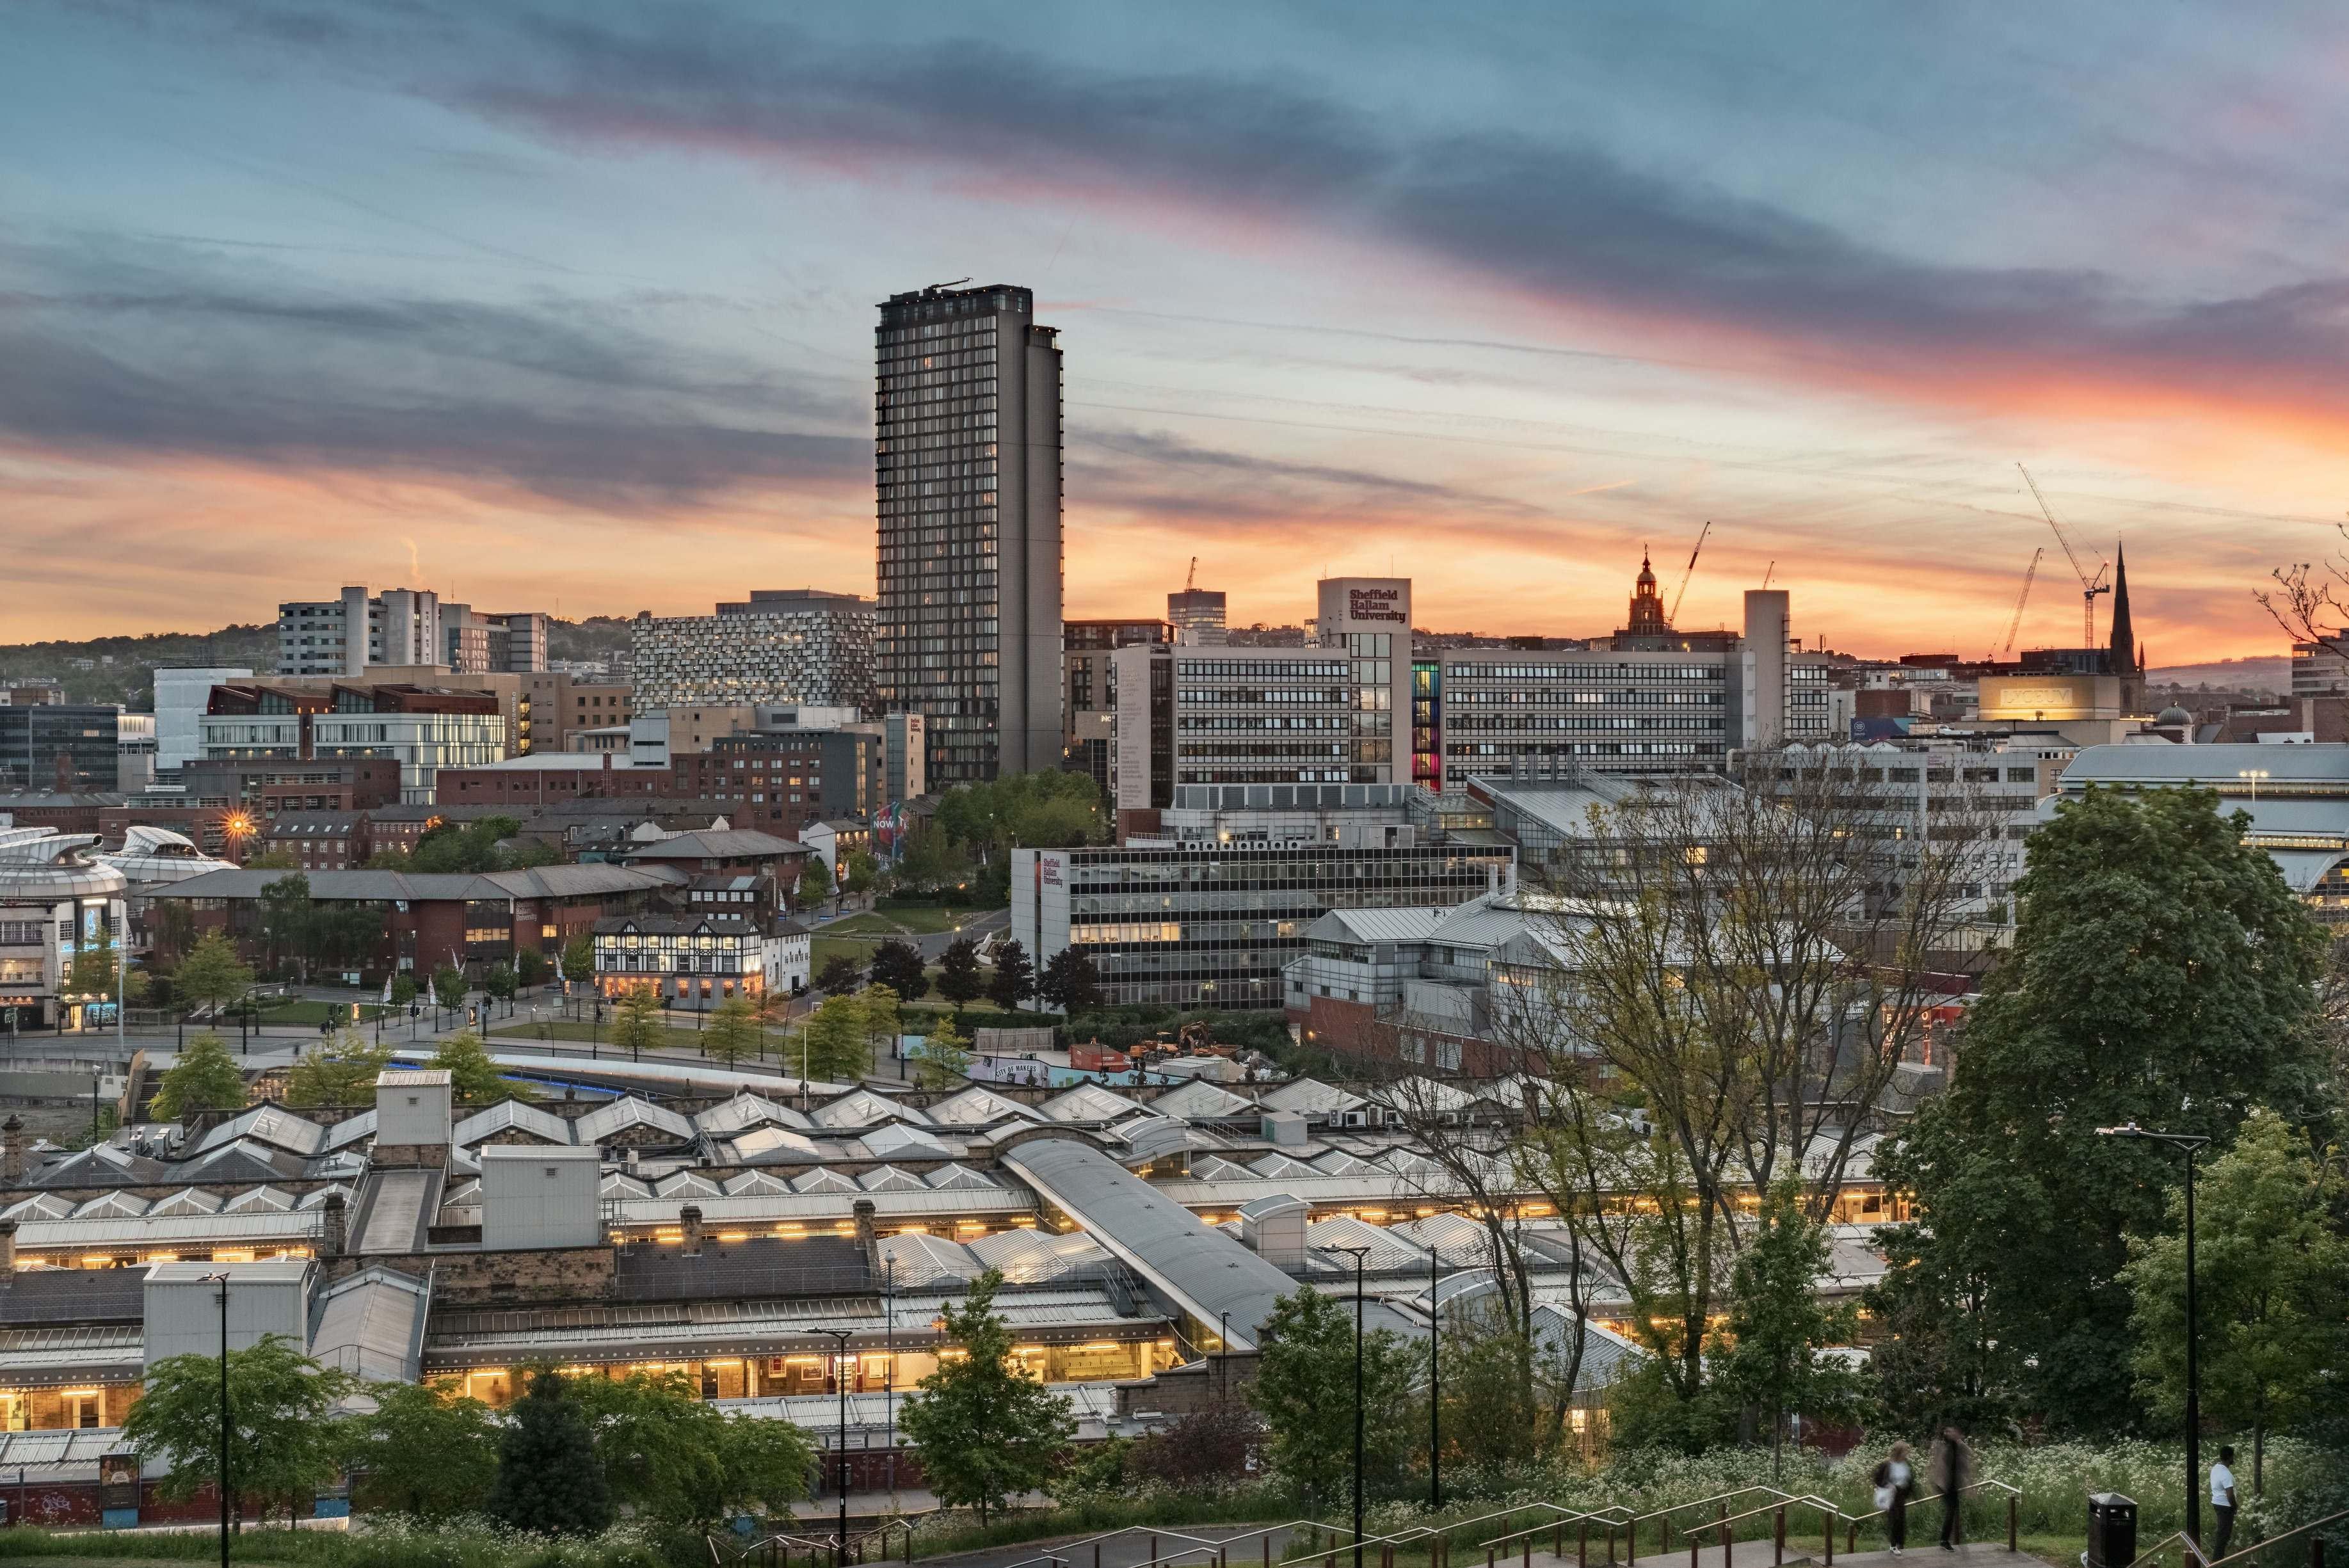 Looking over Sheffield city centre at dusk